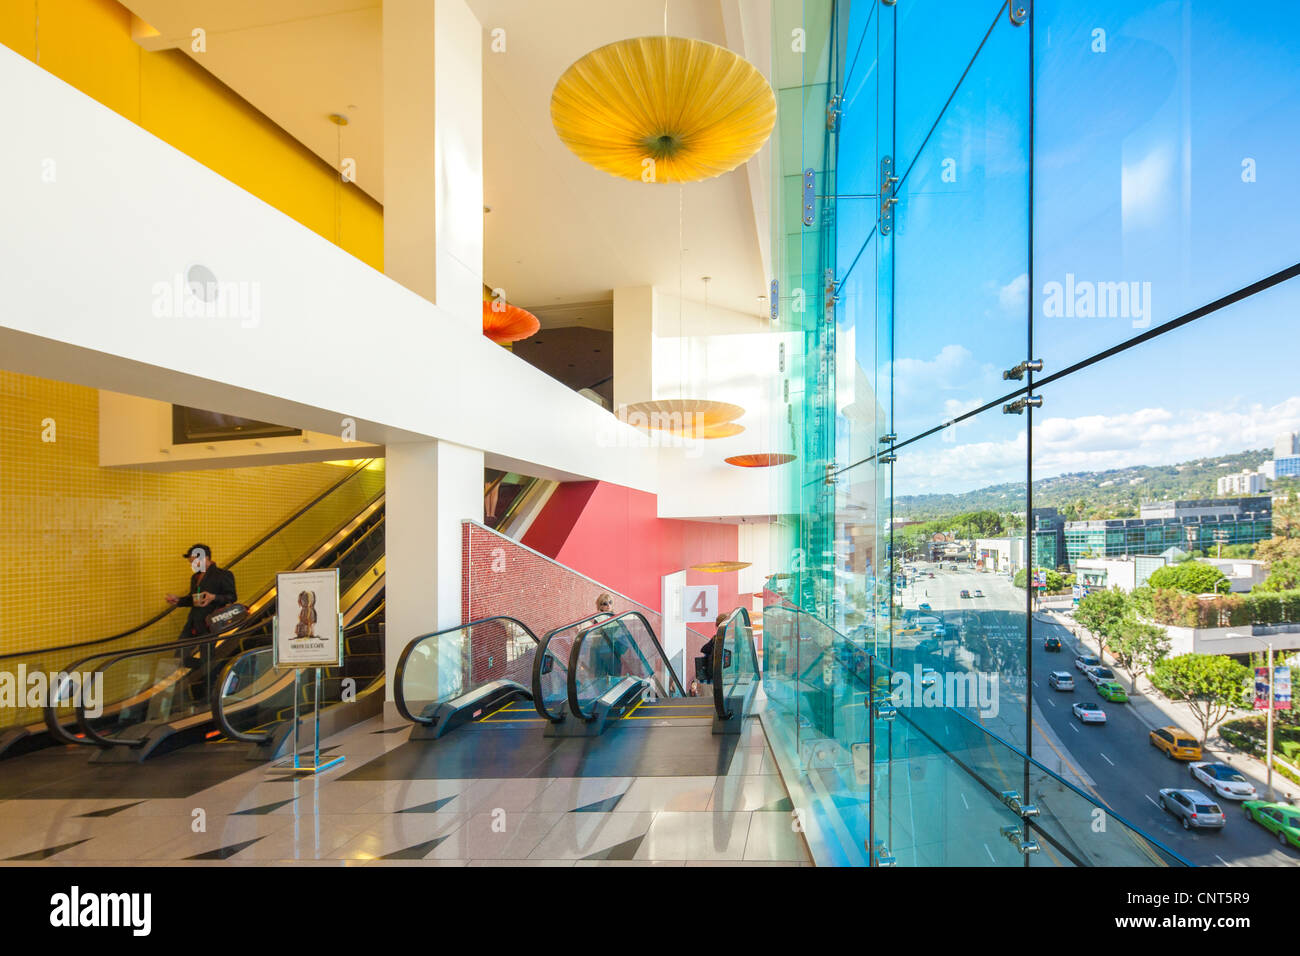 Beverly Hills Center Centre shopping mall Los Angeles. View from the escalators towards the corner of Beverly & - Stock Image